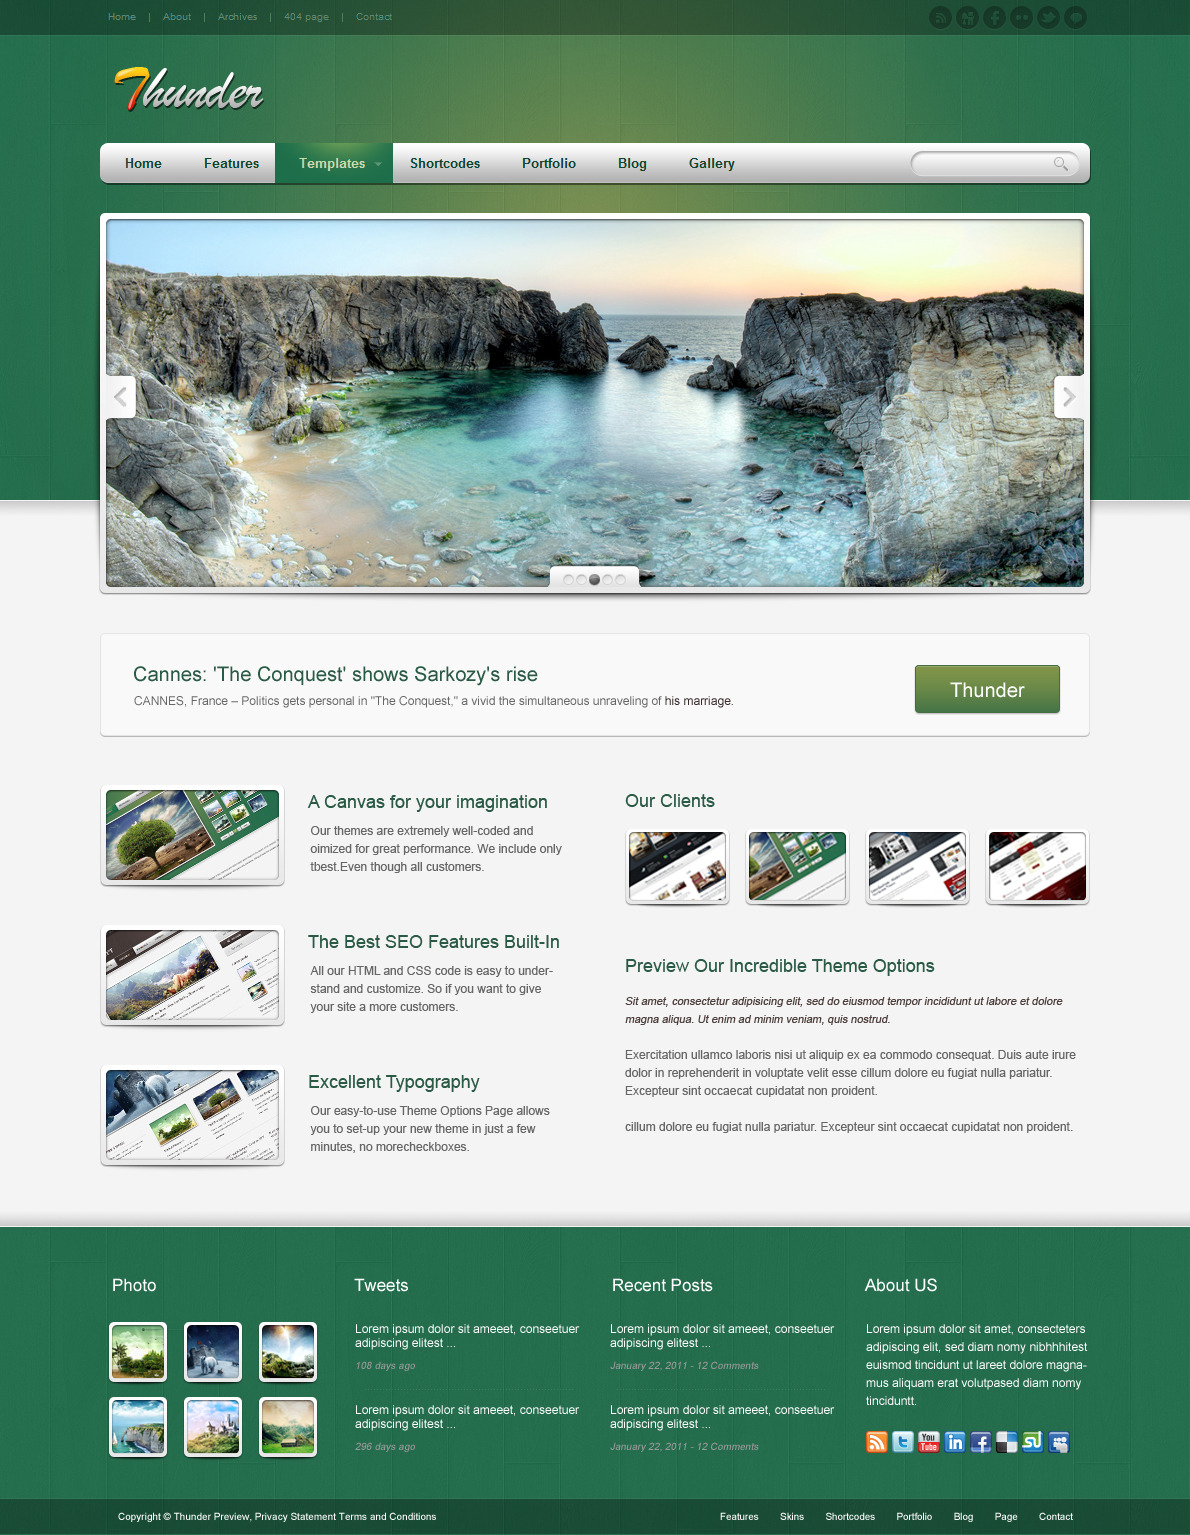 Thunder Corporate & Portfolio WordPress Theme - The homepage template 4.